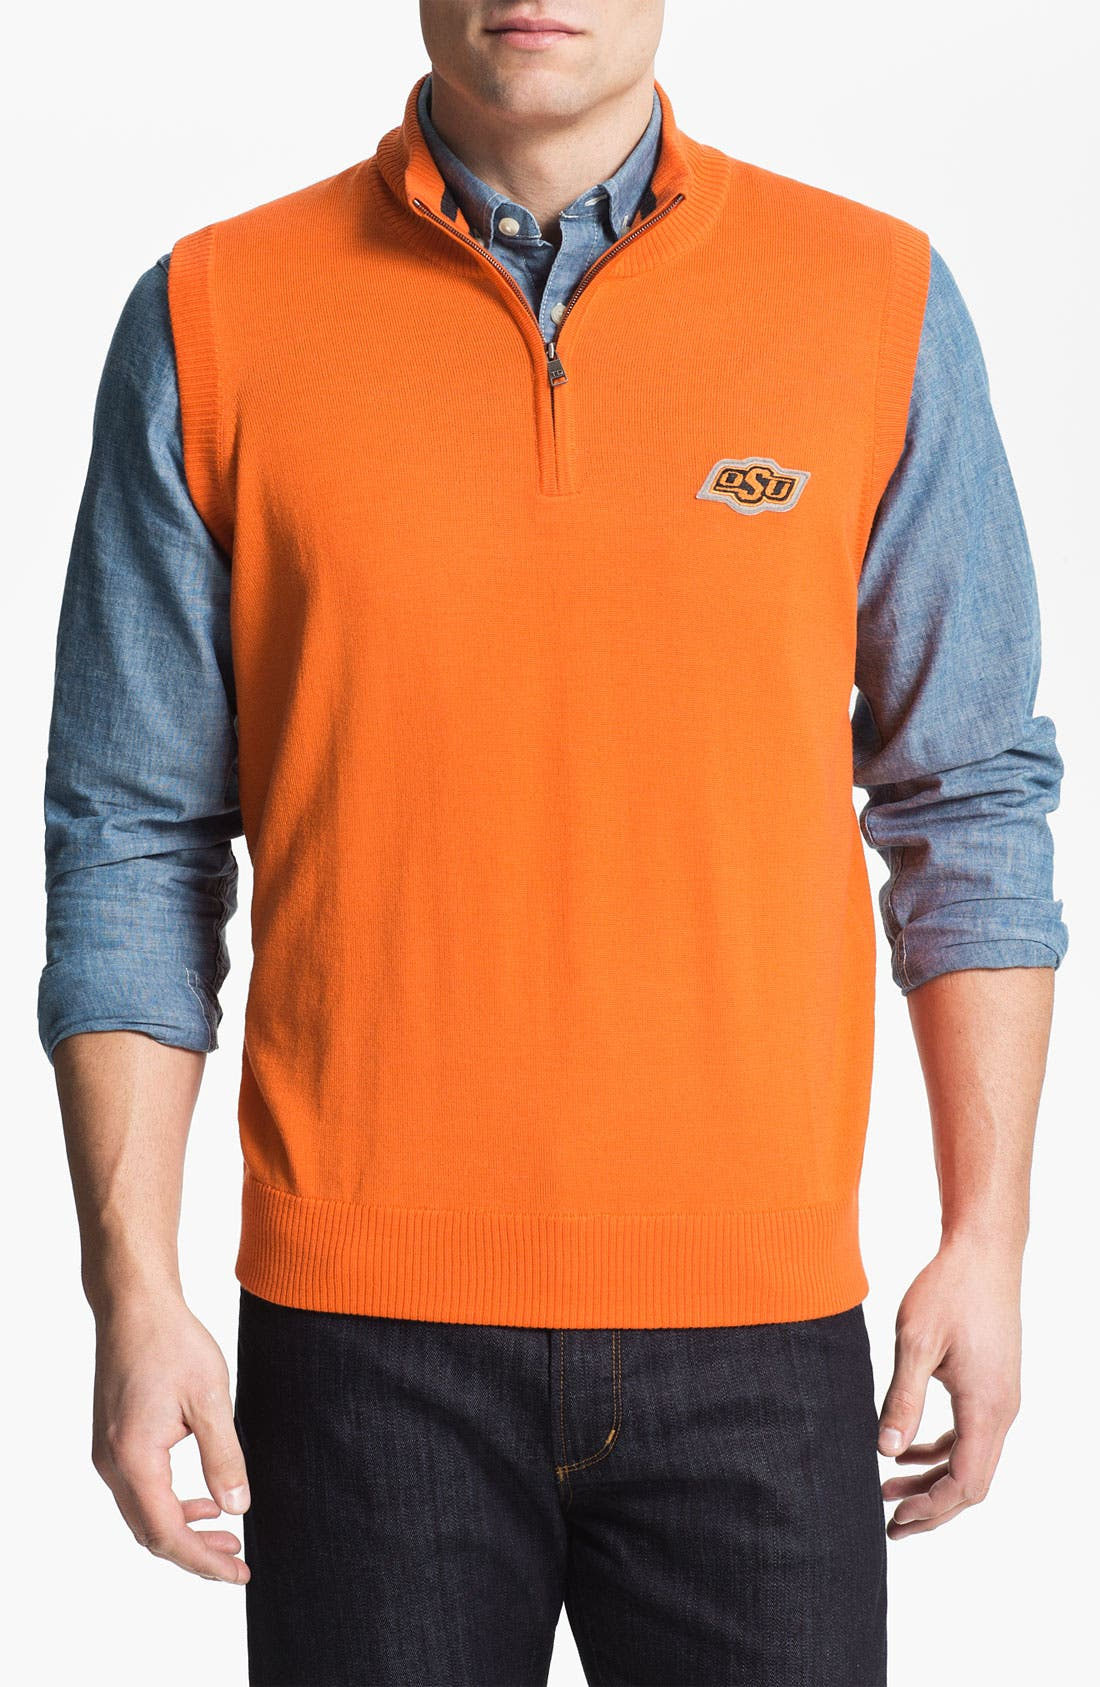 Main Image - Thomas Dean 'Oklahoma State' Quarter Zip Sweater Vest